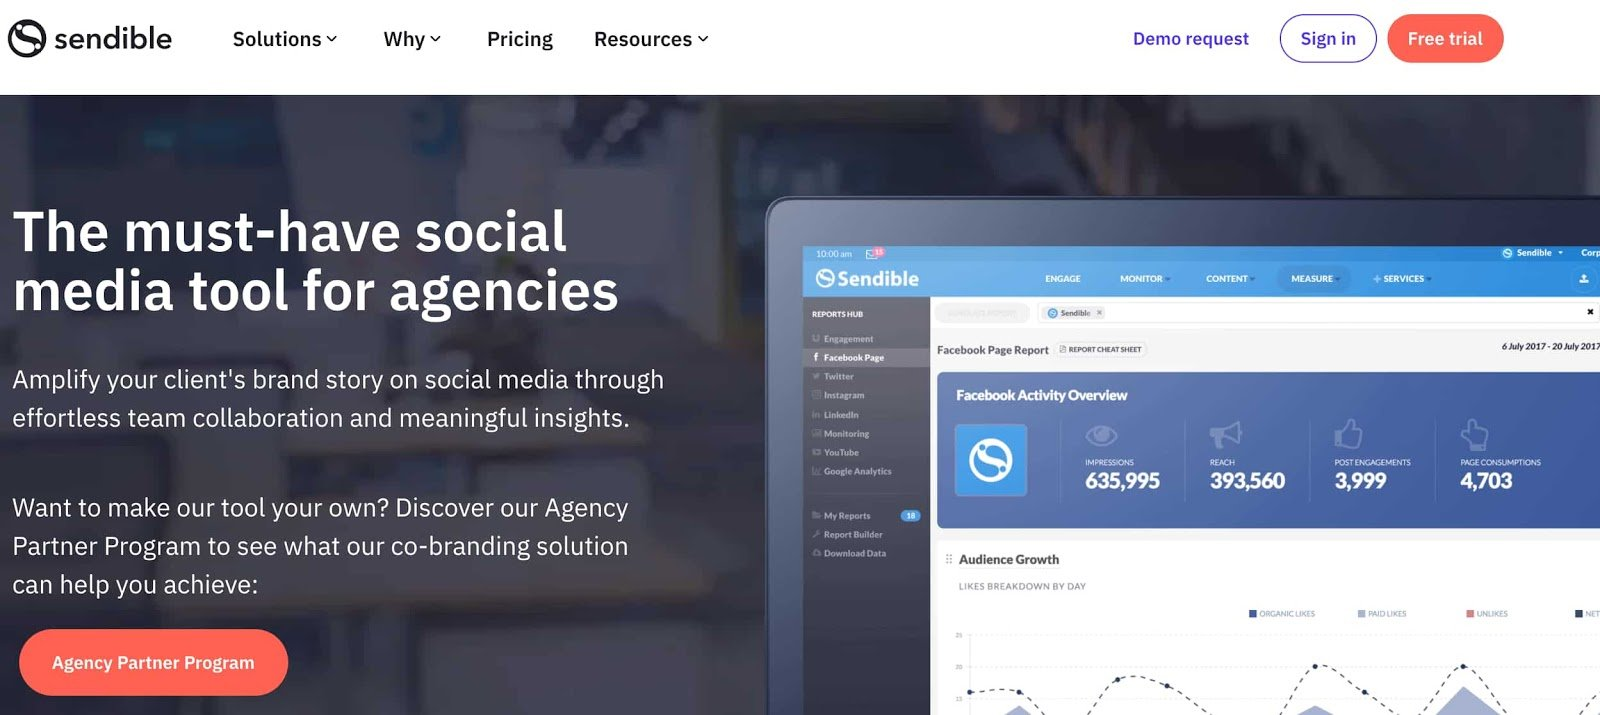 sendible social media management tool for agencies